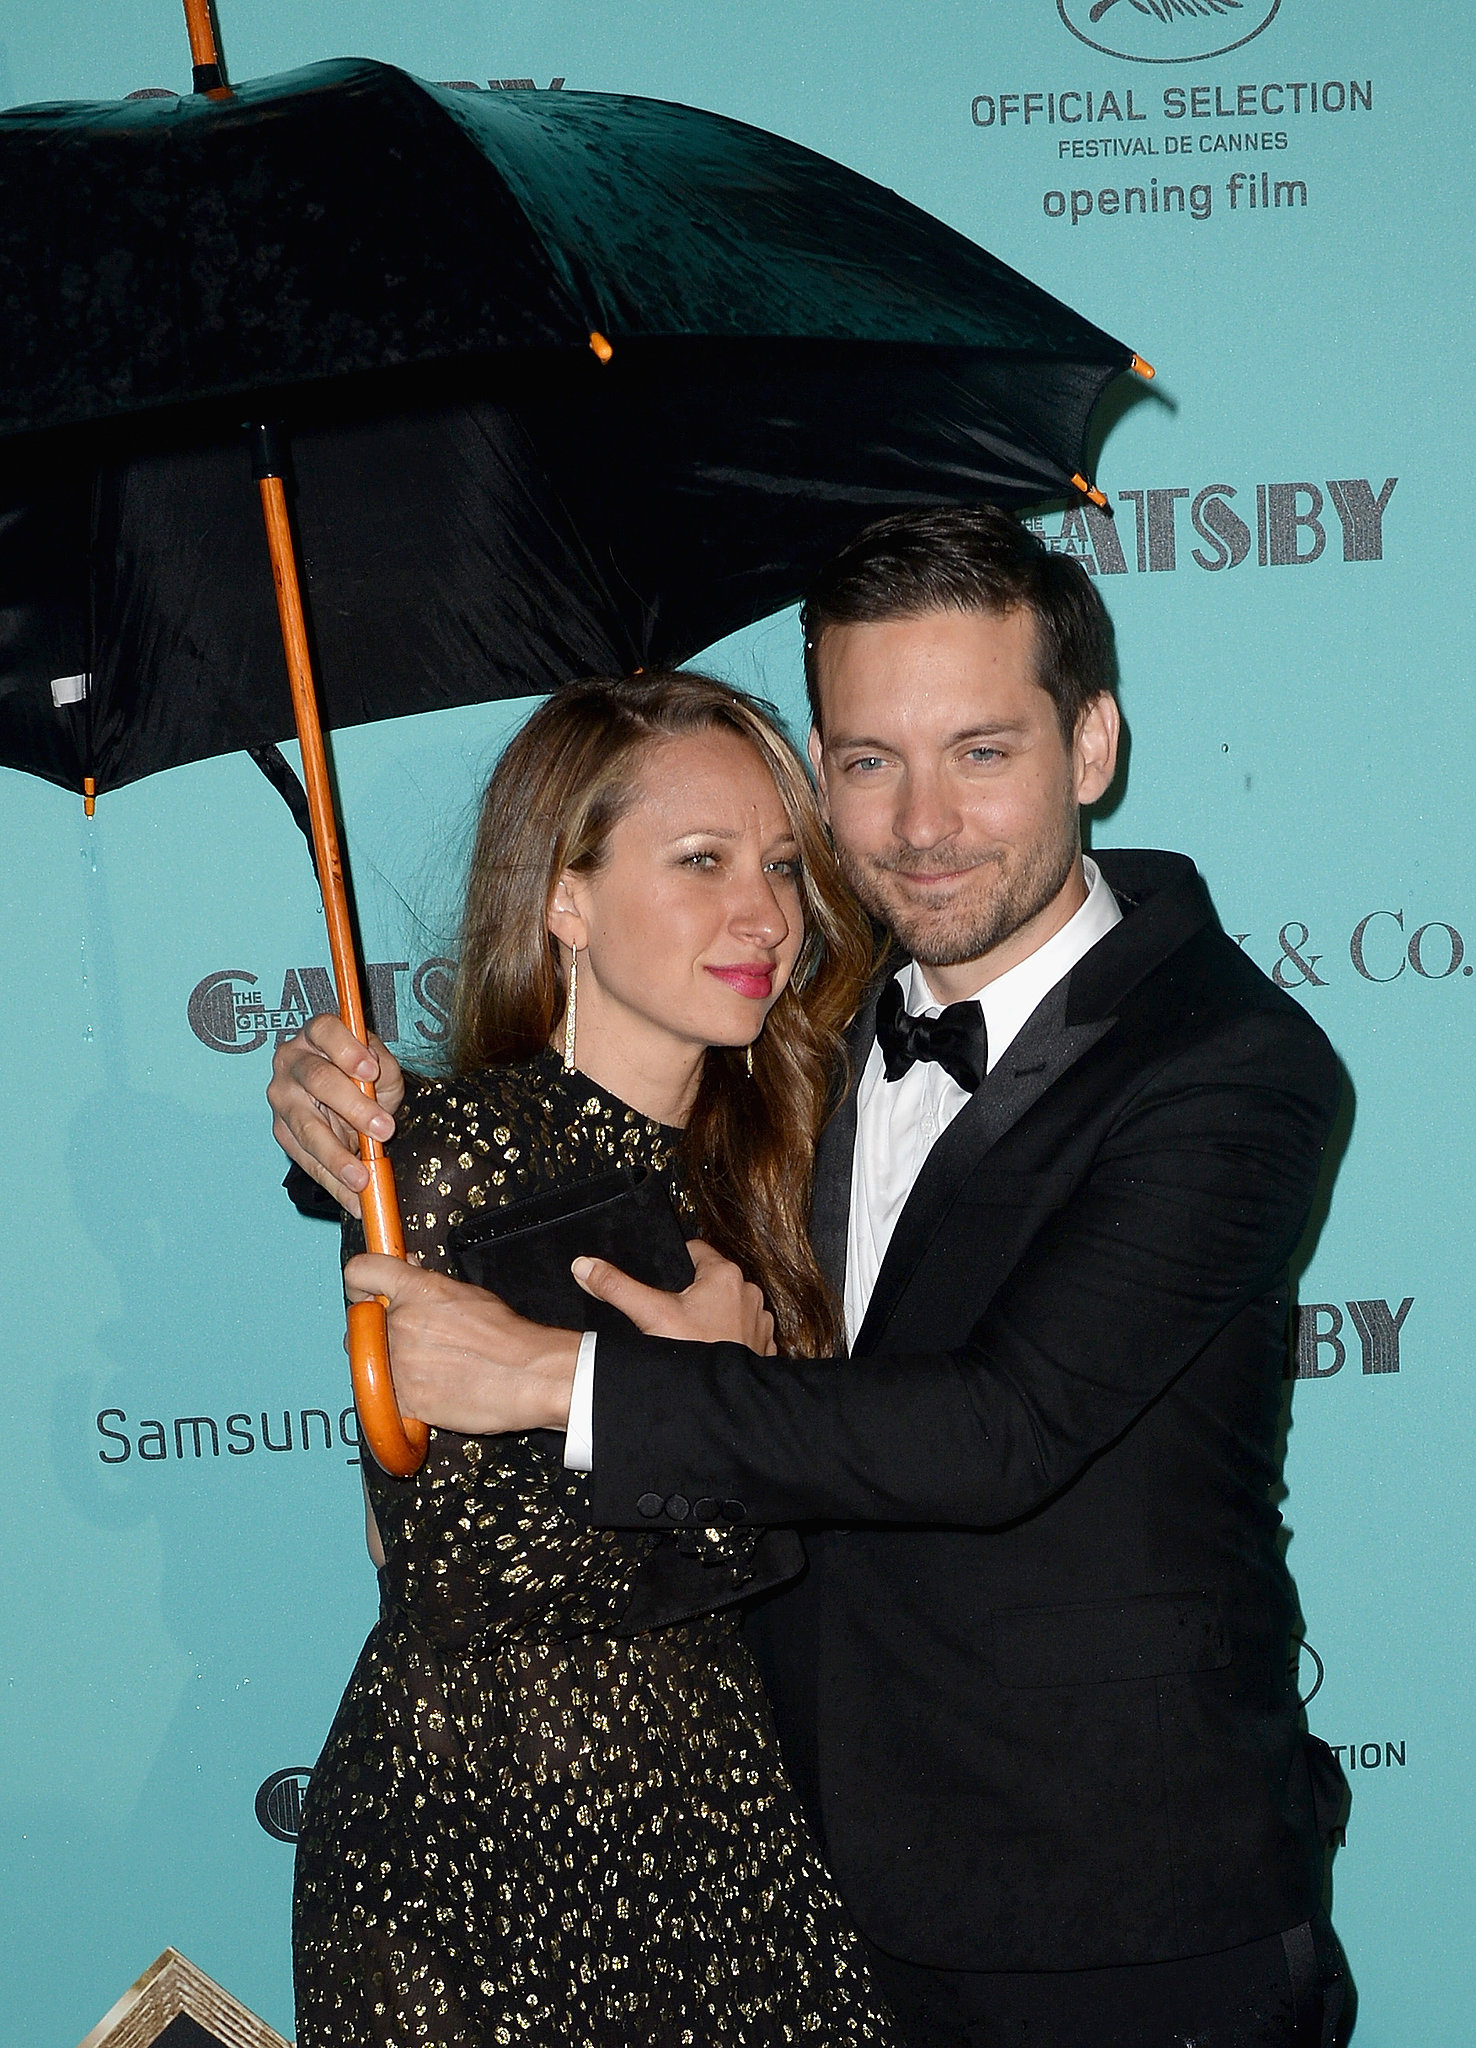 Tobey Maguire and Jennifer Meyer in 2013